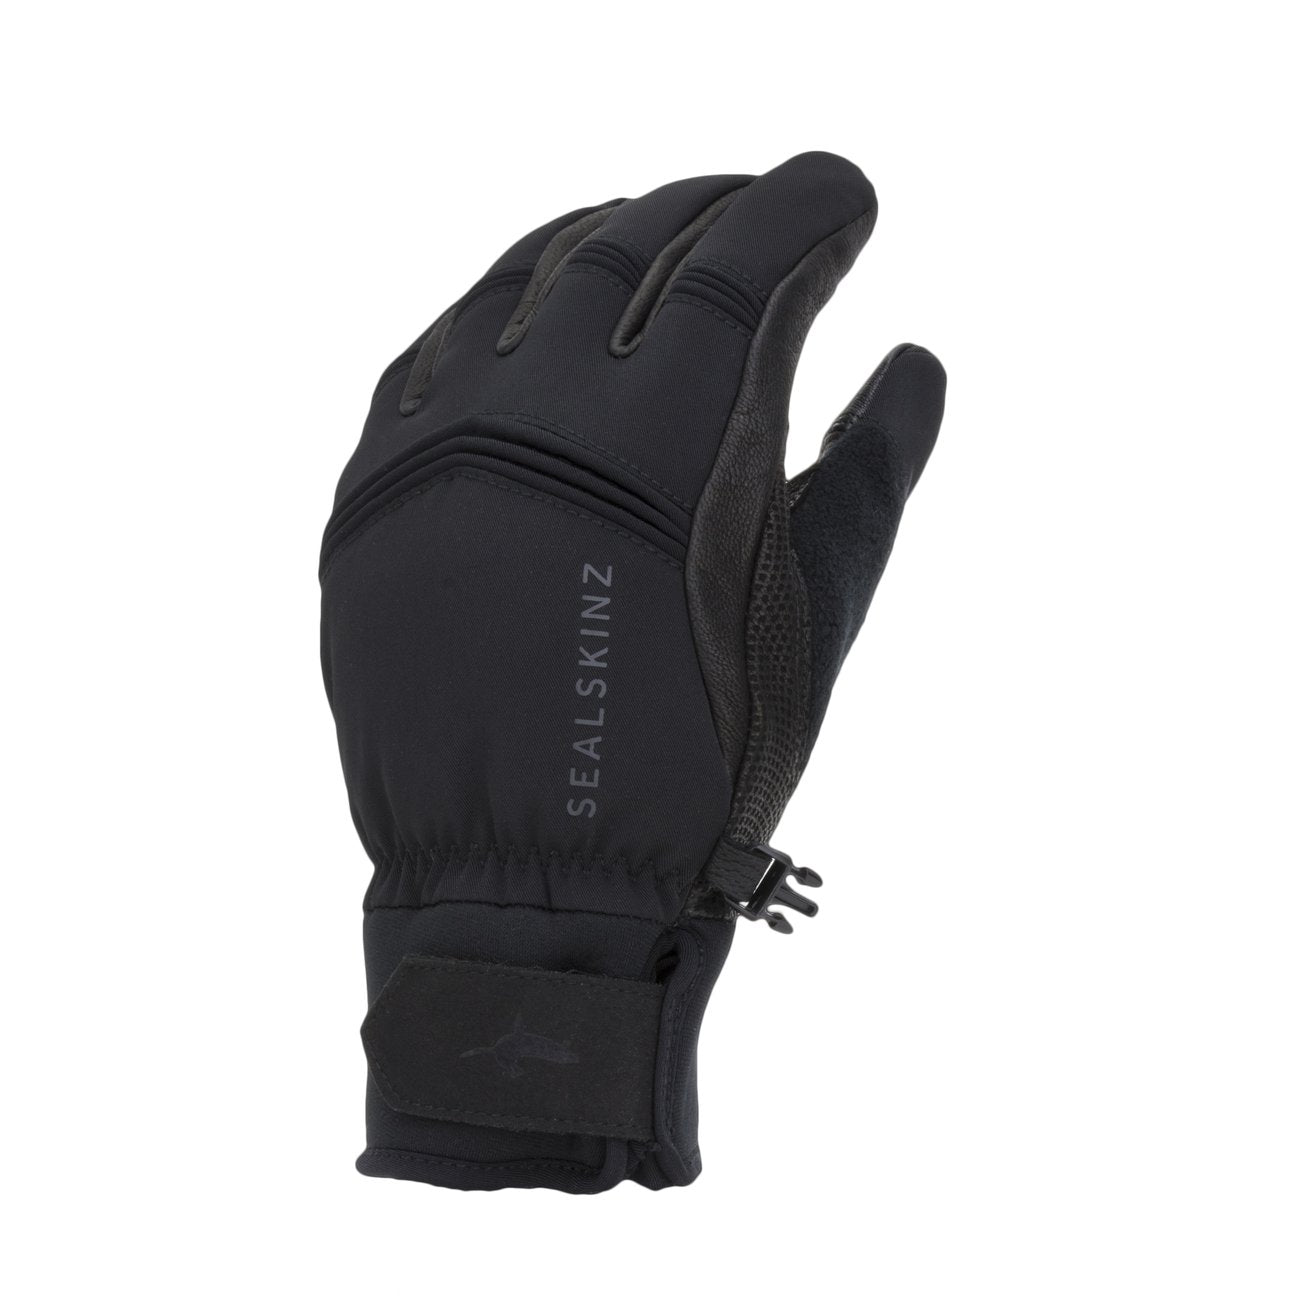 waterproof-extreme-cold-weather-glove